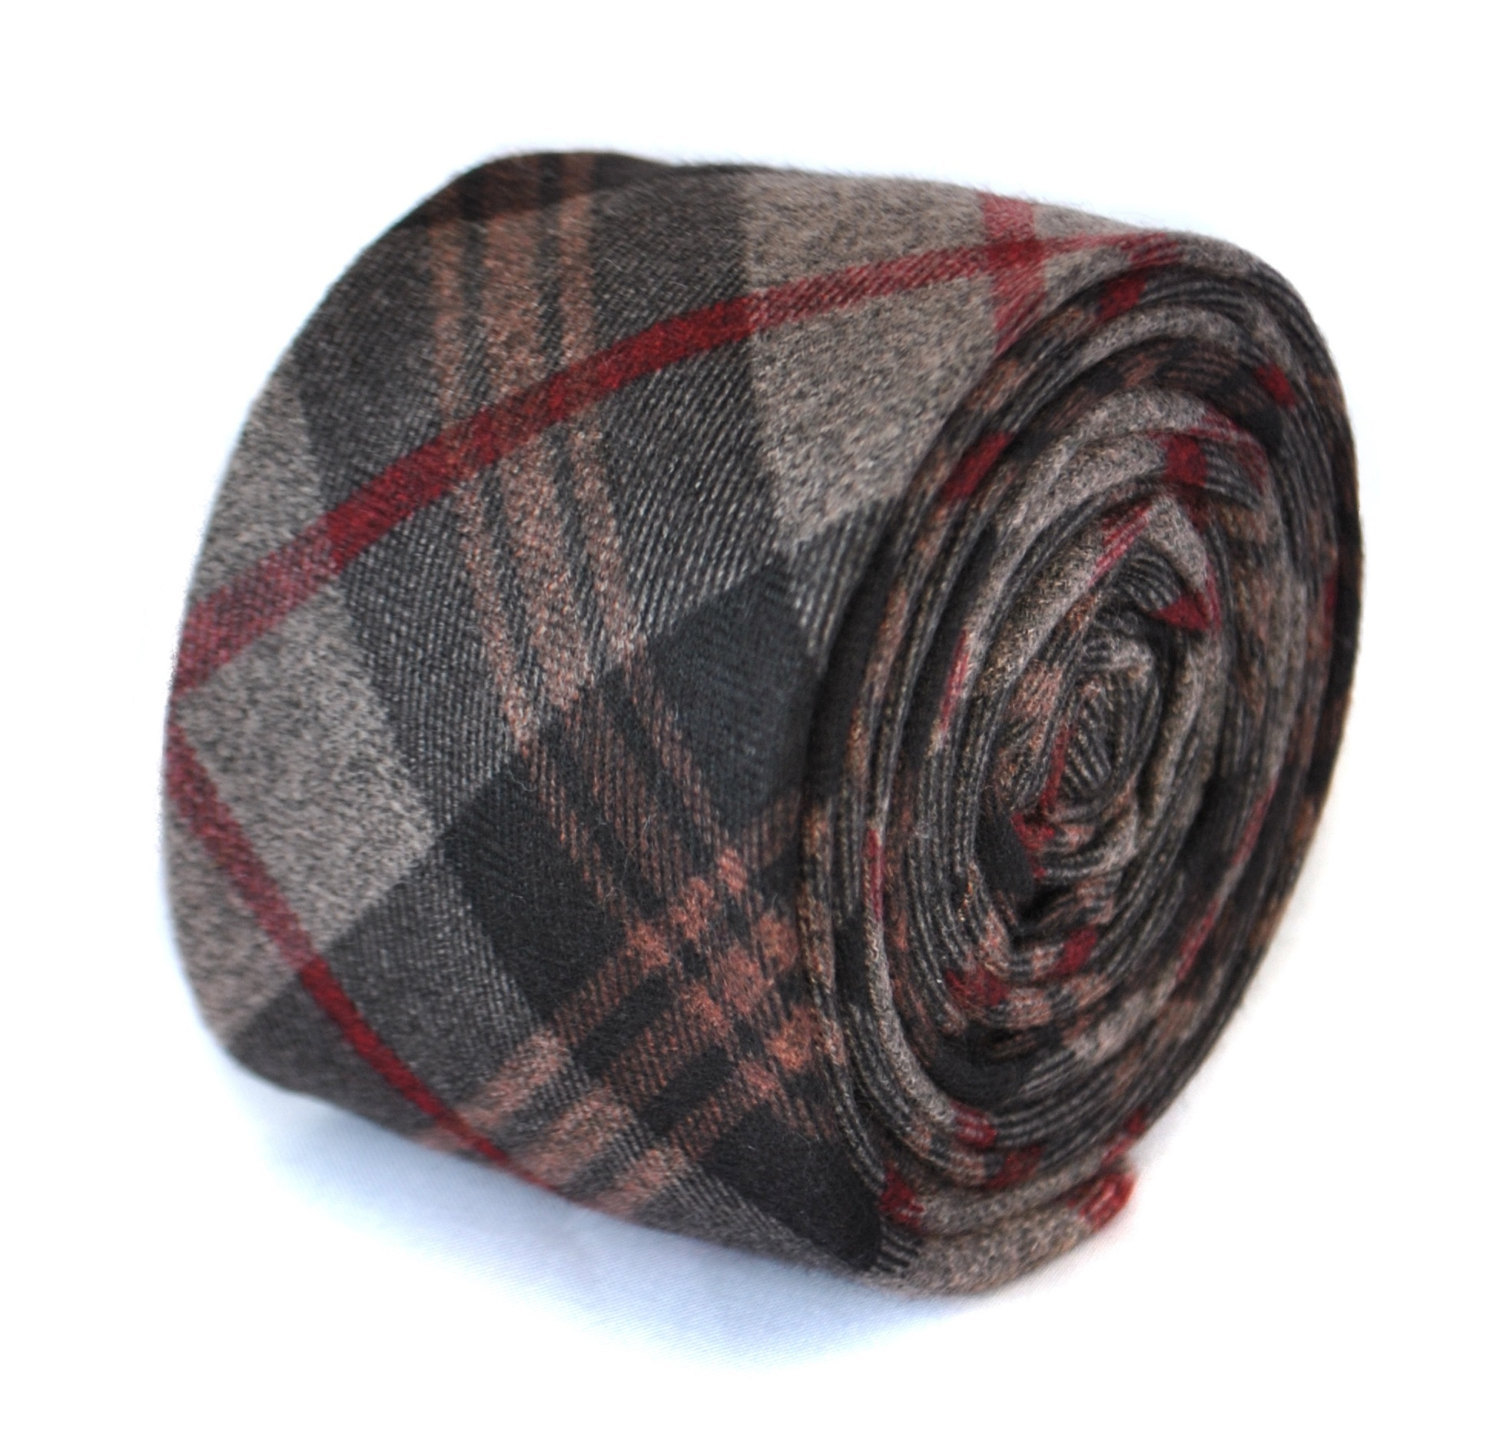 red, grey and brown 100% wool tweed check tie by Frederick Thomas FT2079